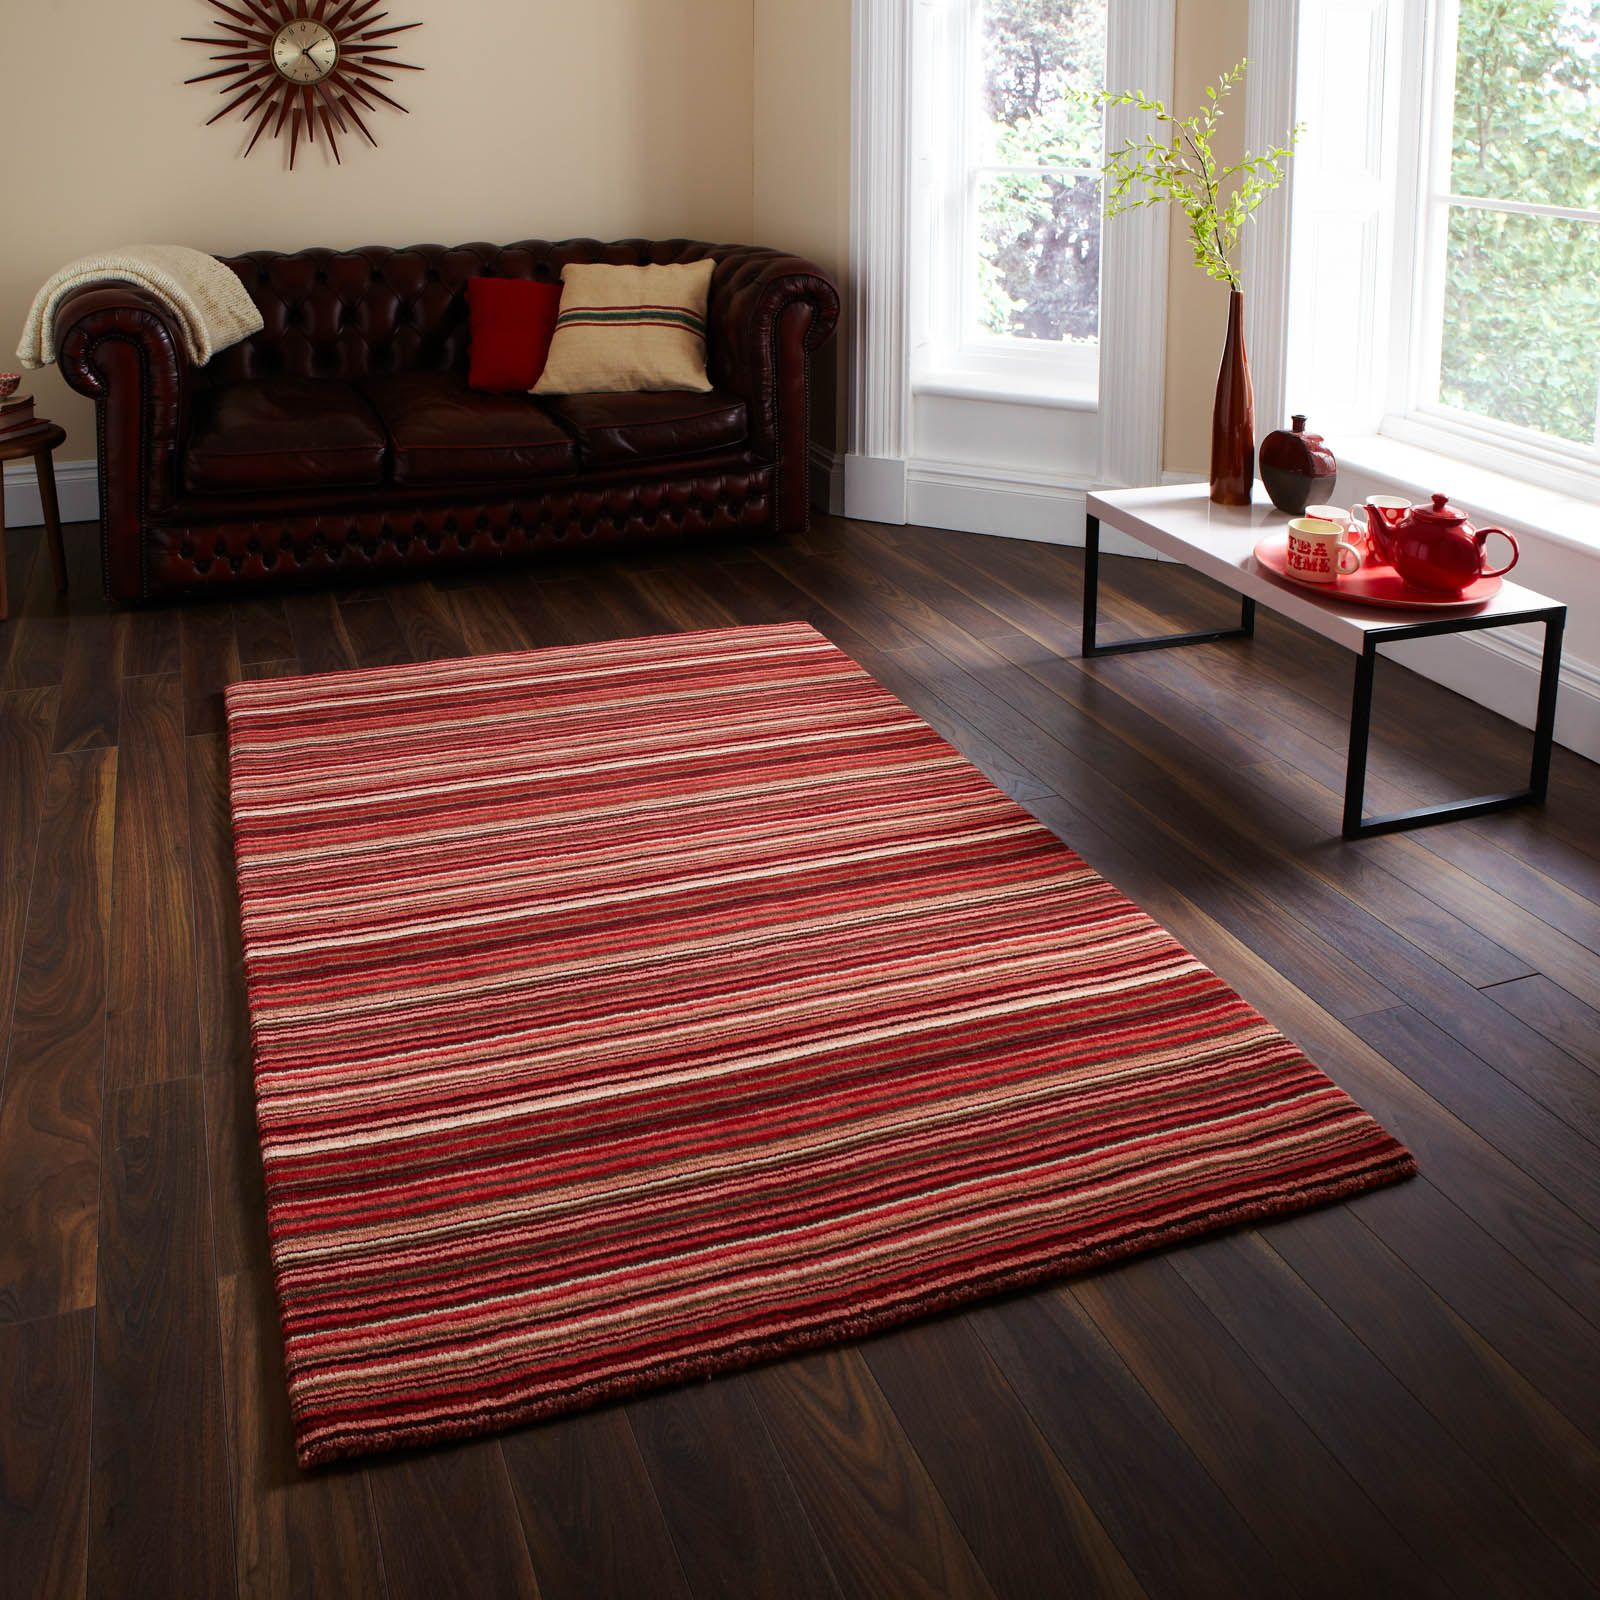 The Rug Oxford Stripes Red Beige In Mainly Tones This Is Beautiful Stripey Hand Knotted